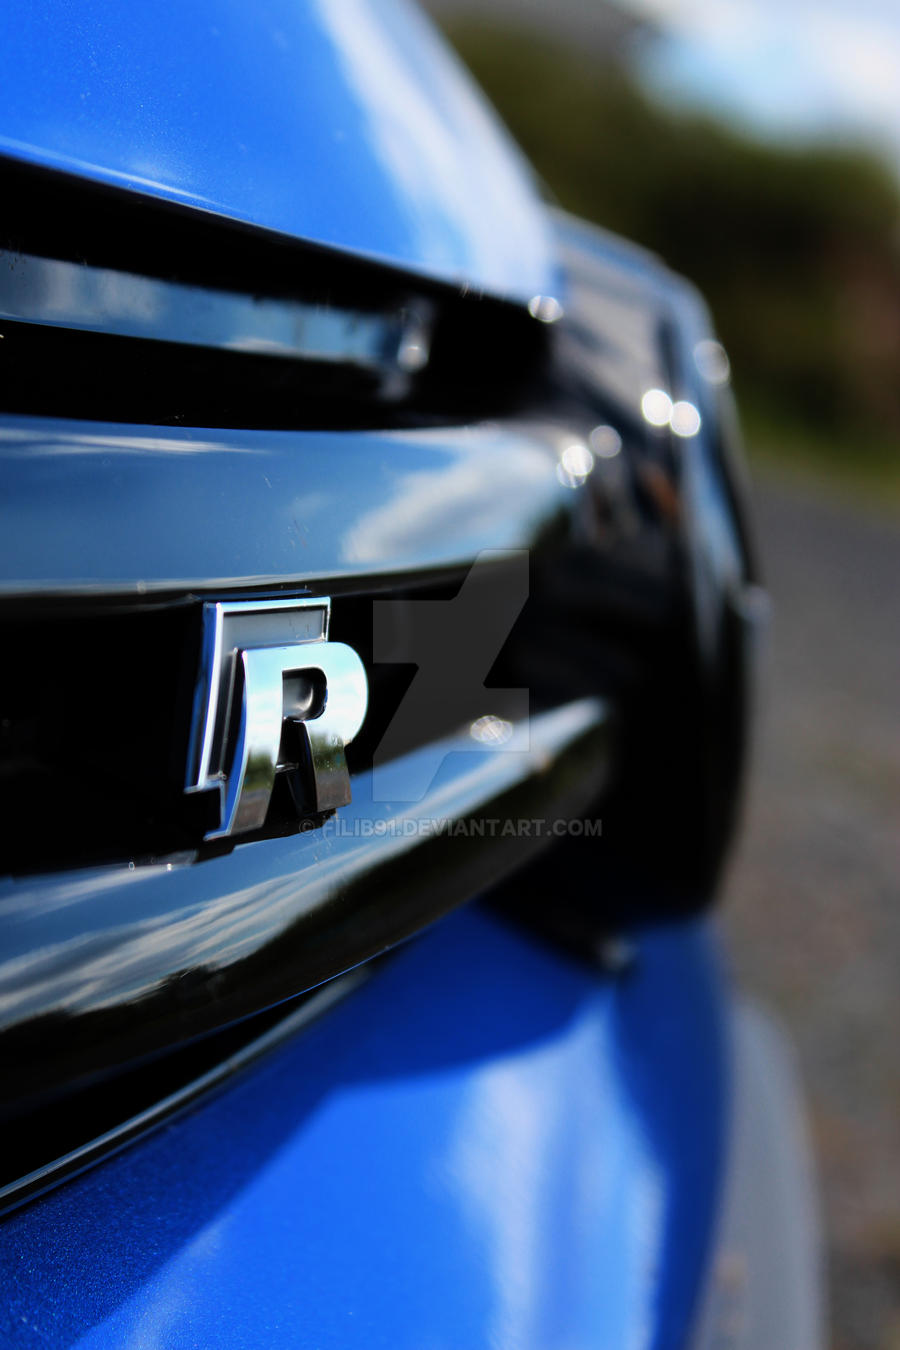 vw golf r logo by filib91 on deviantart